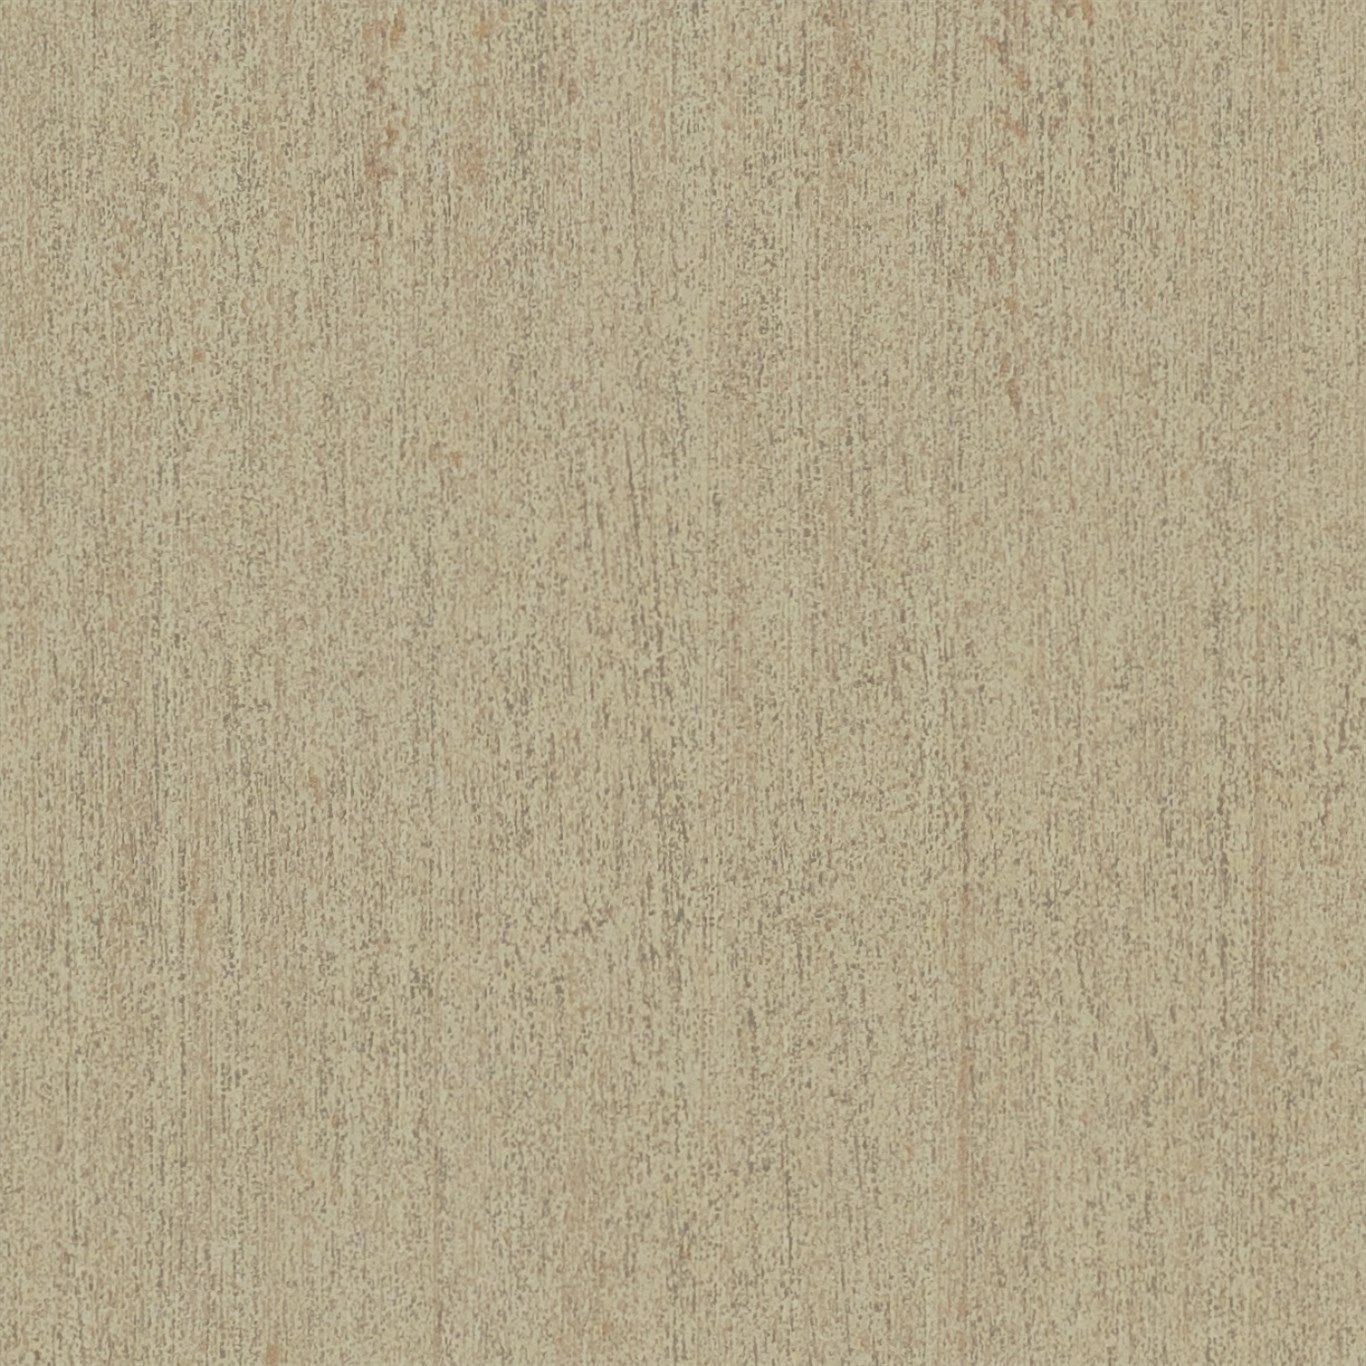 Papel Pintado Zoffany Antique Plain 311737 . Disponible online en Modacasa.es